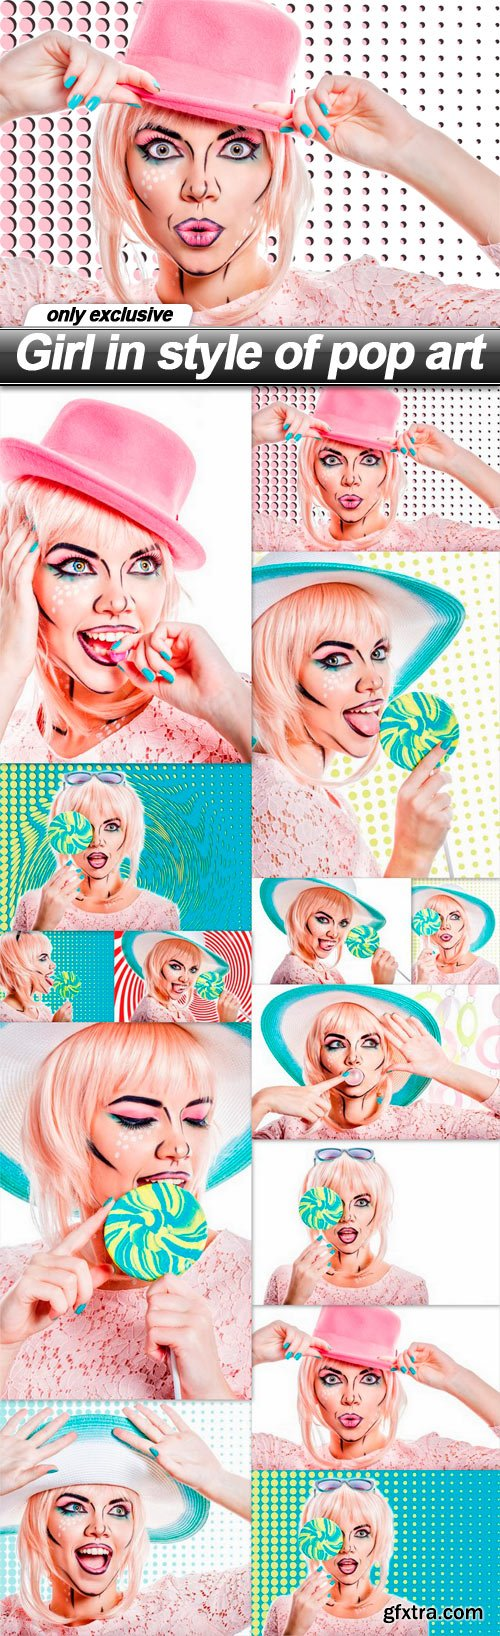 Girl in style of pop art - 14 UHQ JPEG